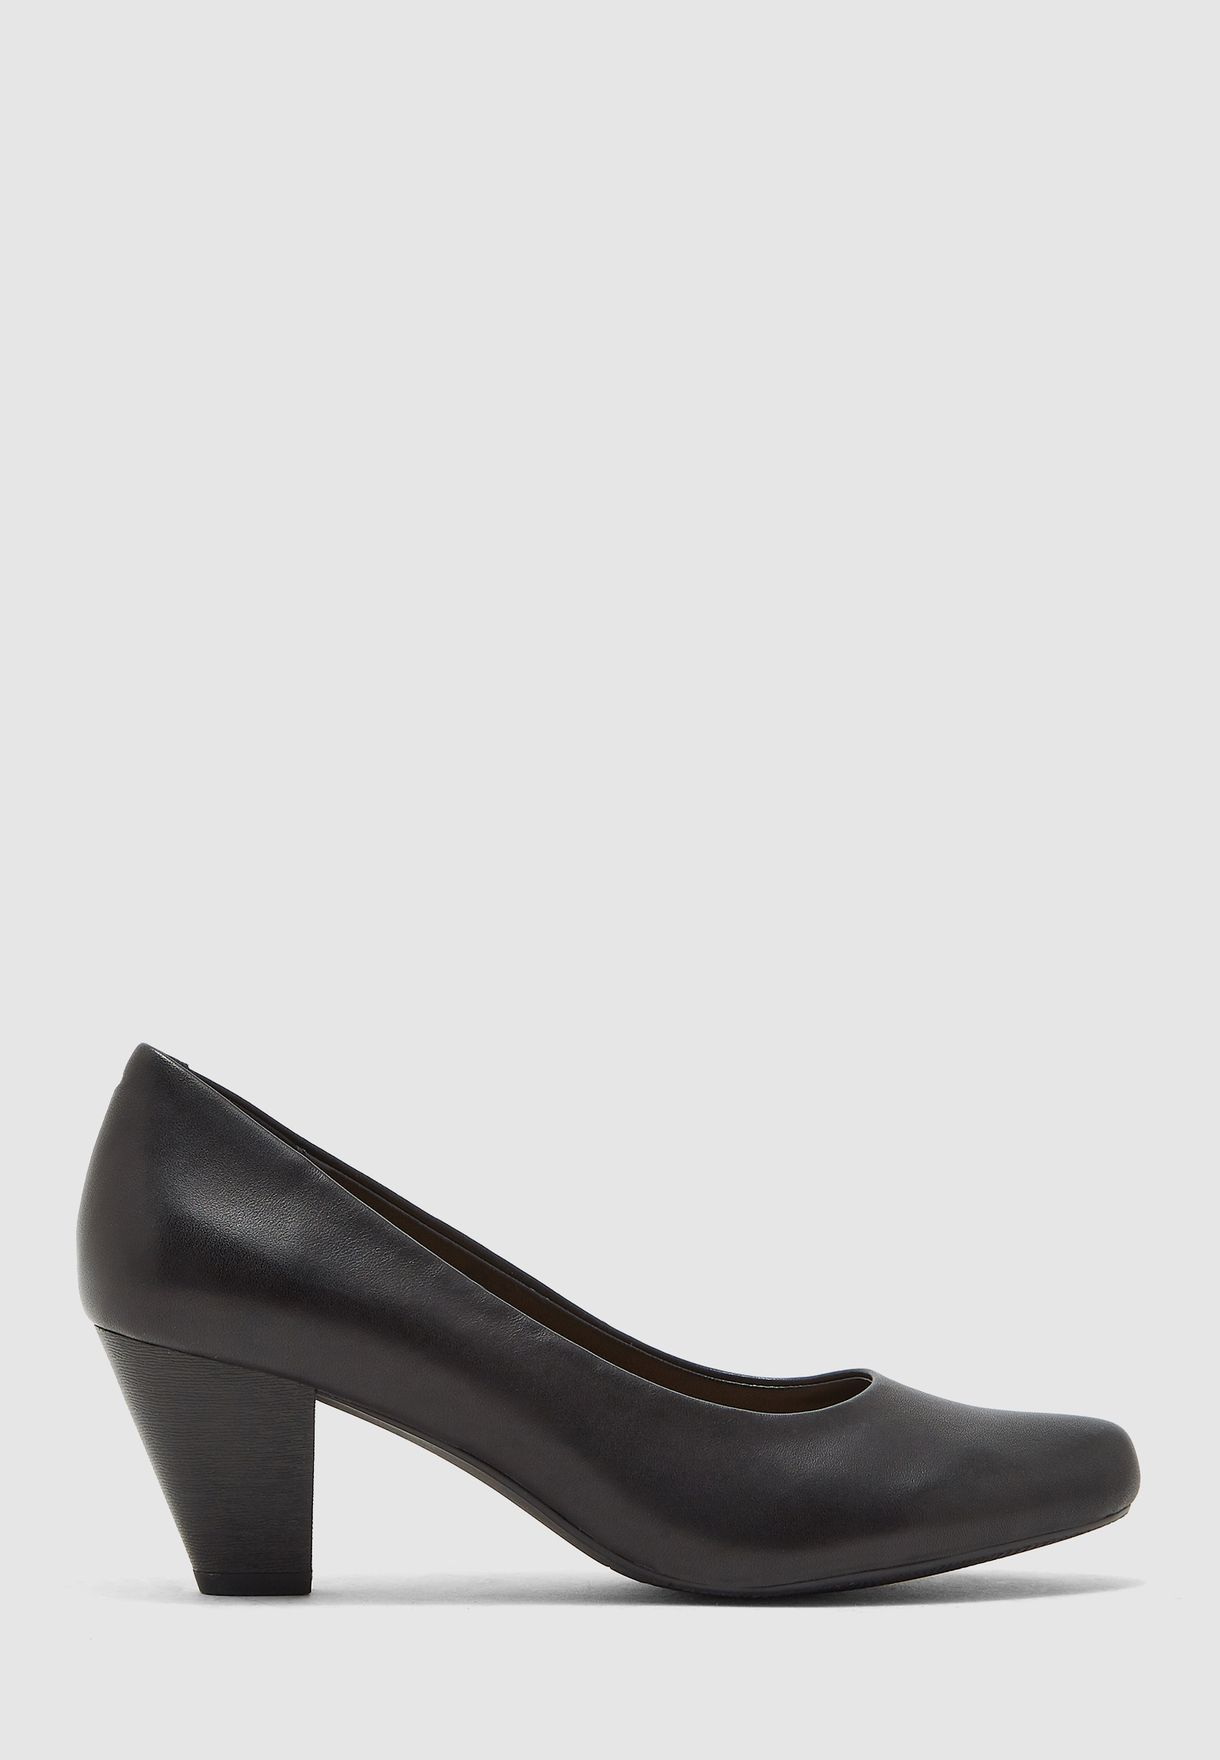 Casual Block Heel Pump